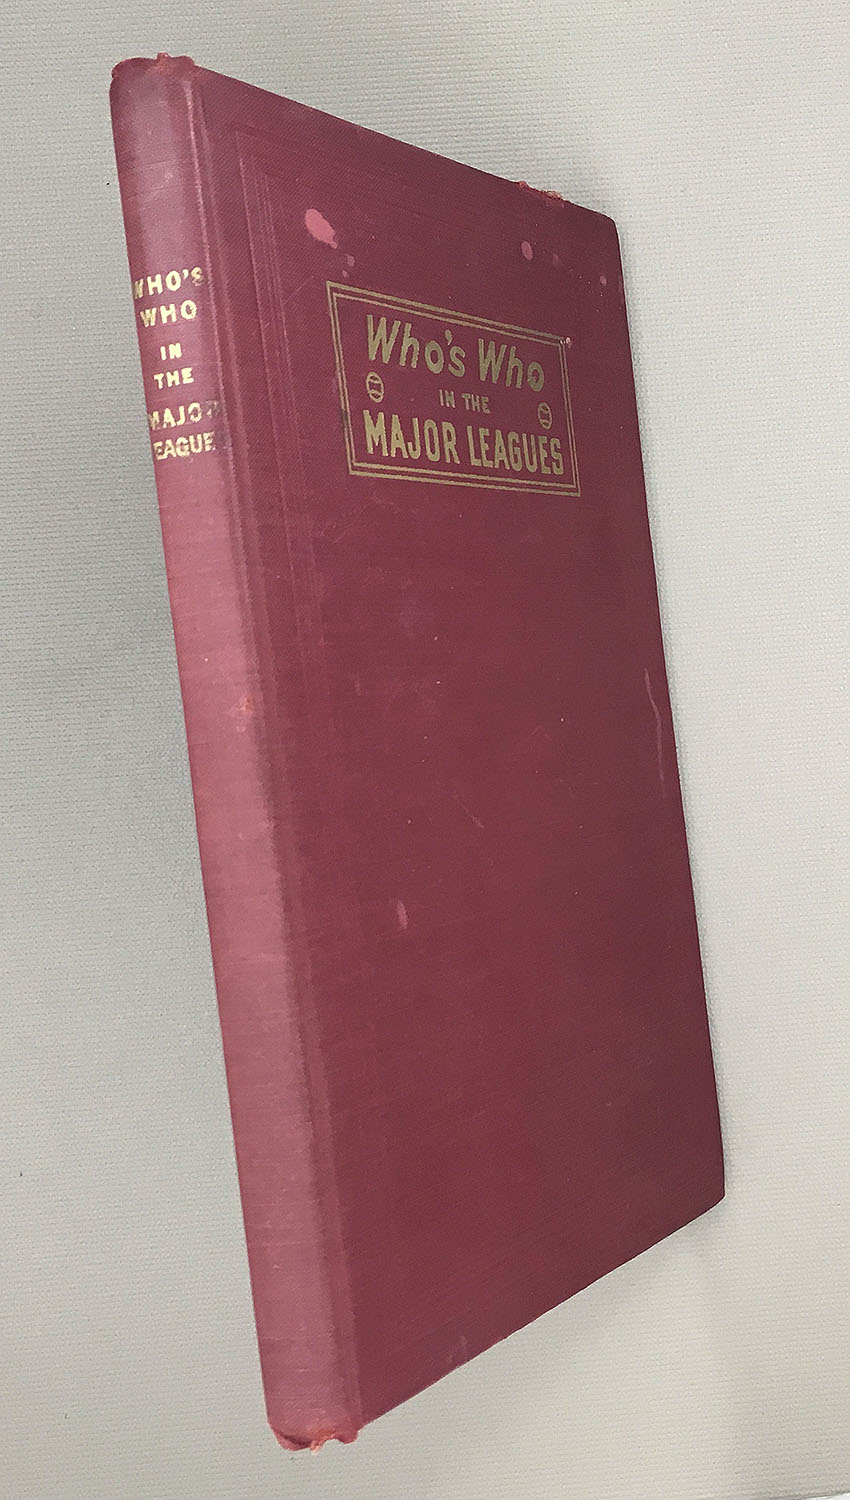 Who's Who In The Major Leagues by John P. Carmichael 1945